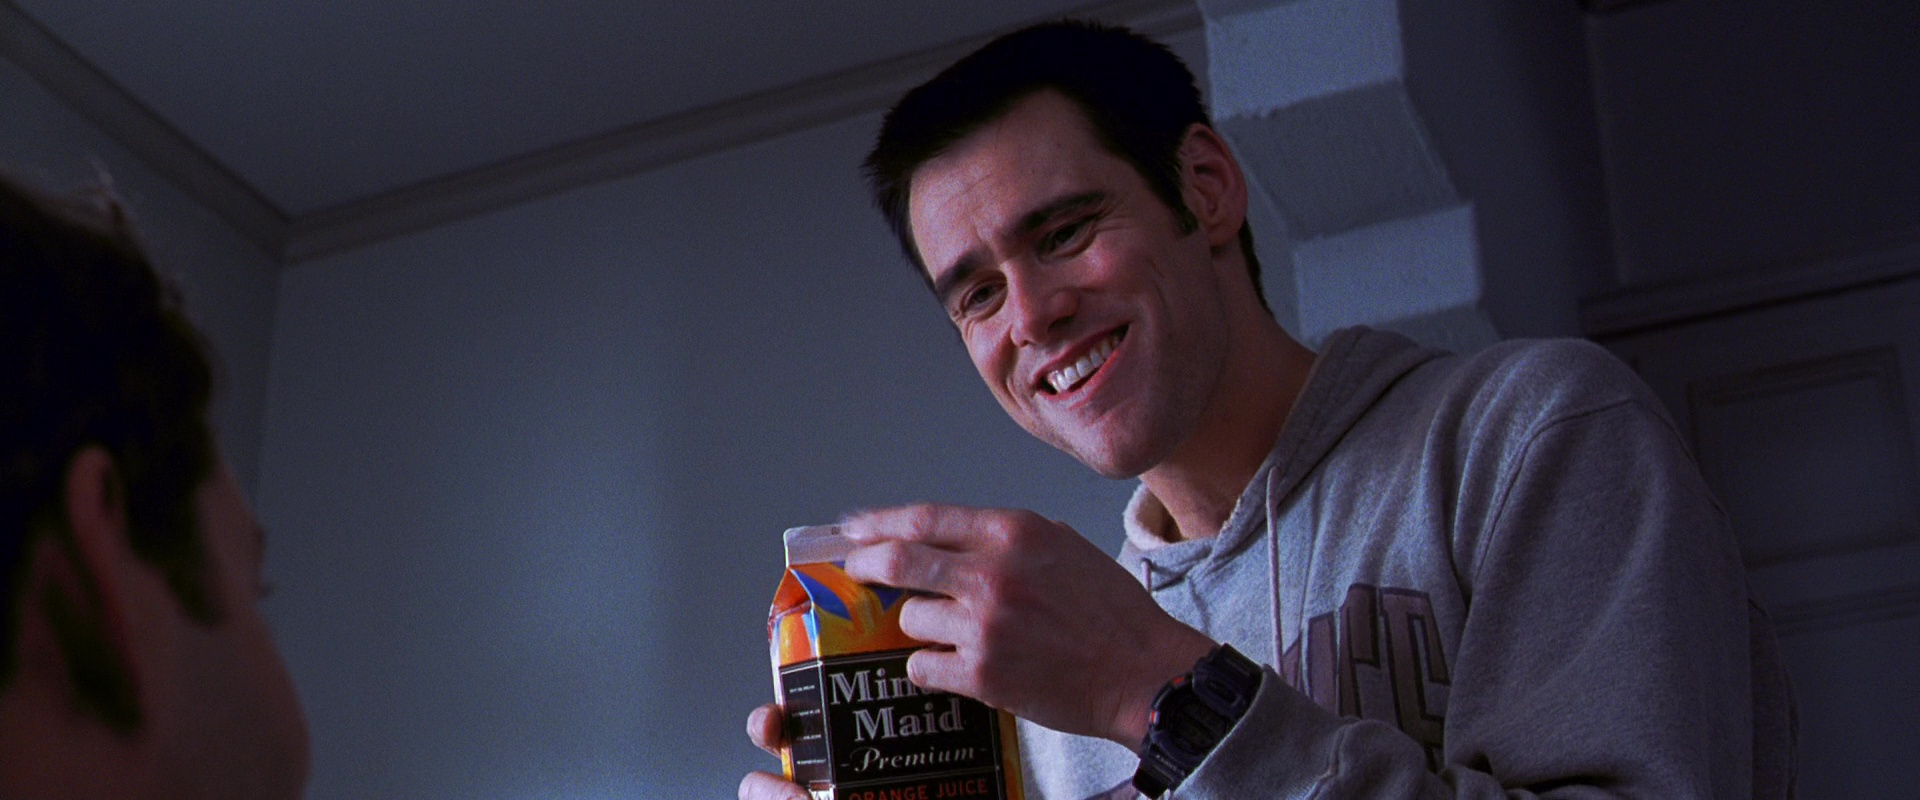 hight resolution of minute maid premium orange juice and jim carrey in the cable guy 1996